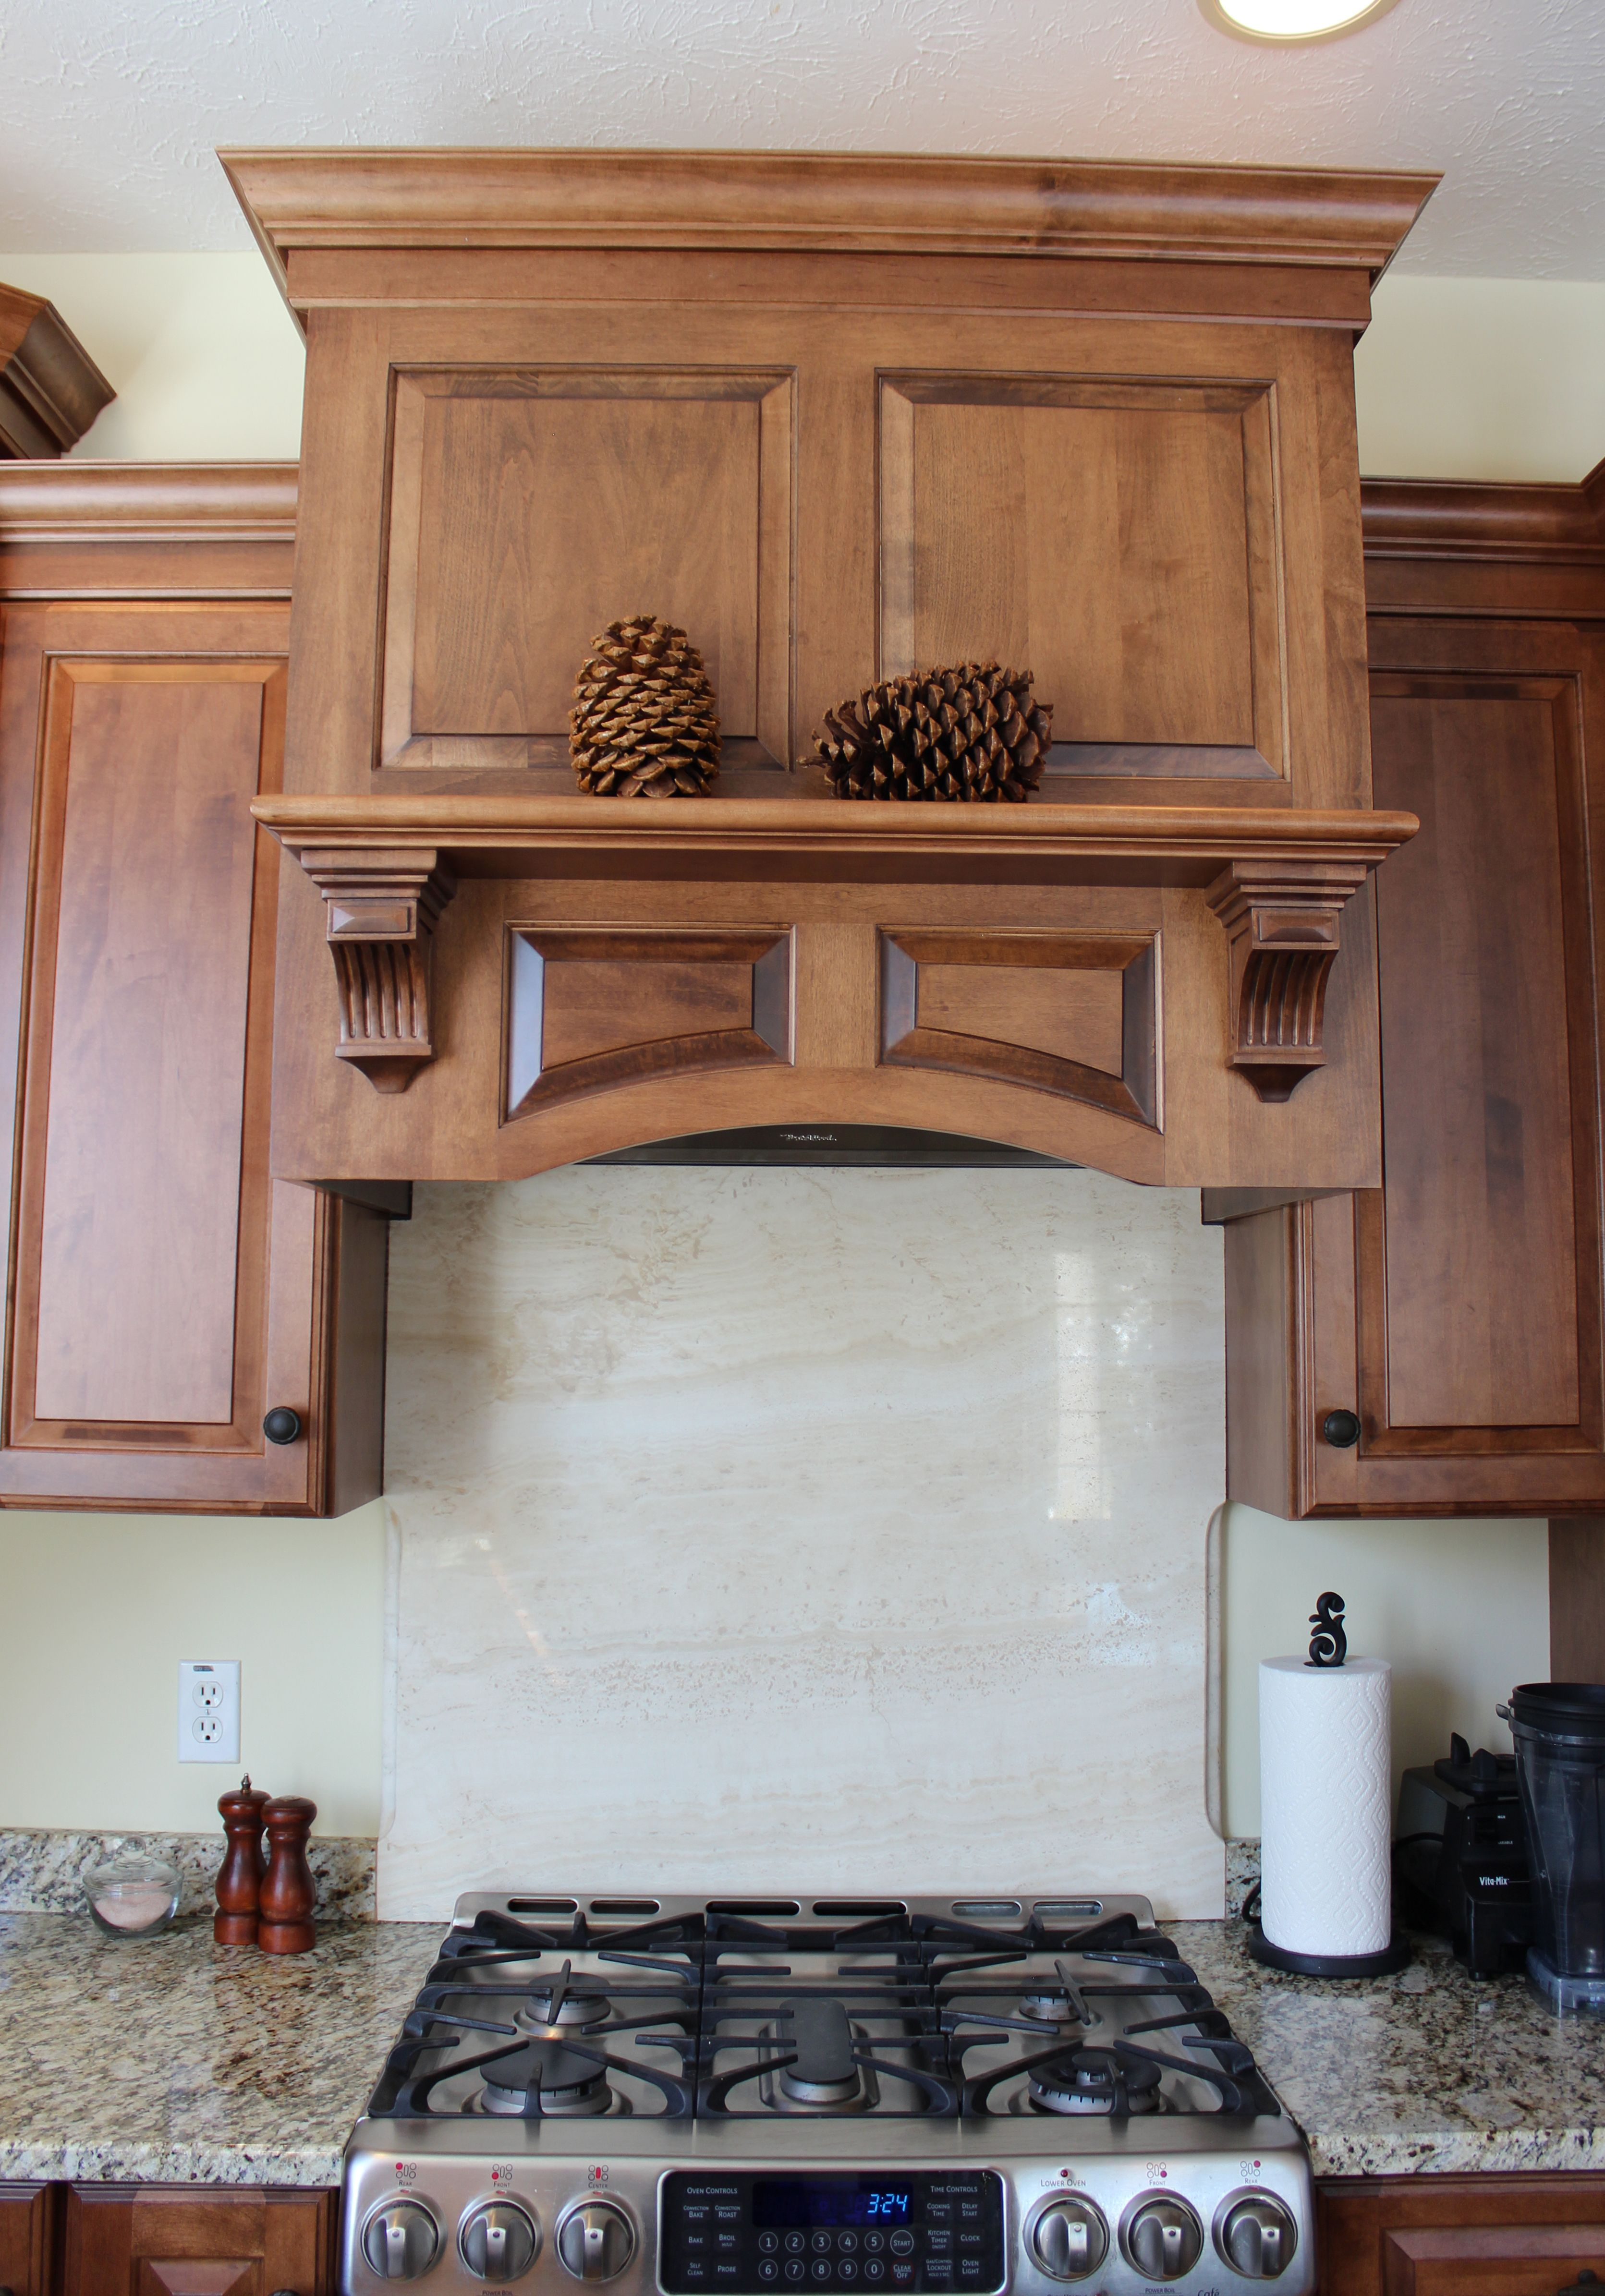 Maple crown molding kitchen cabinets - Medallion Gold Maple Amaretto Cabinets In The Brookhill Door Style With Matching Hood And Crown Molding